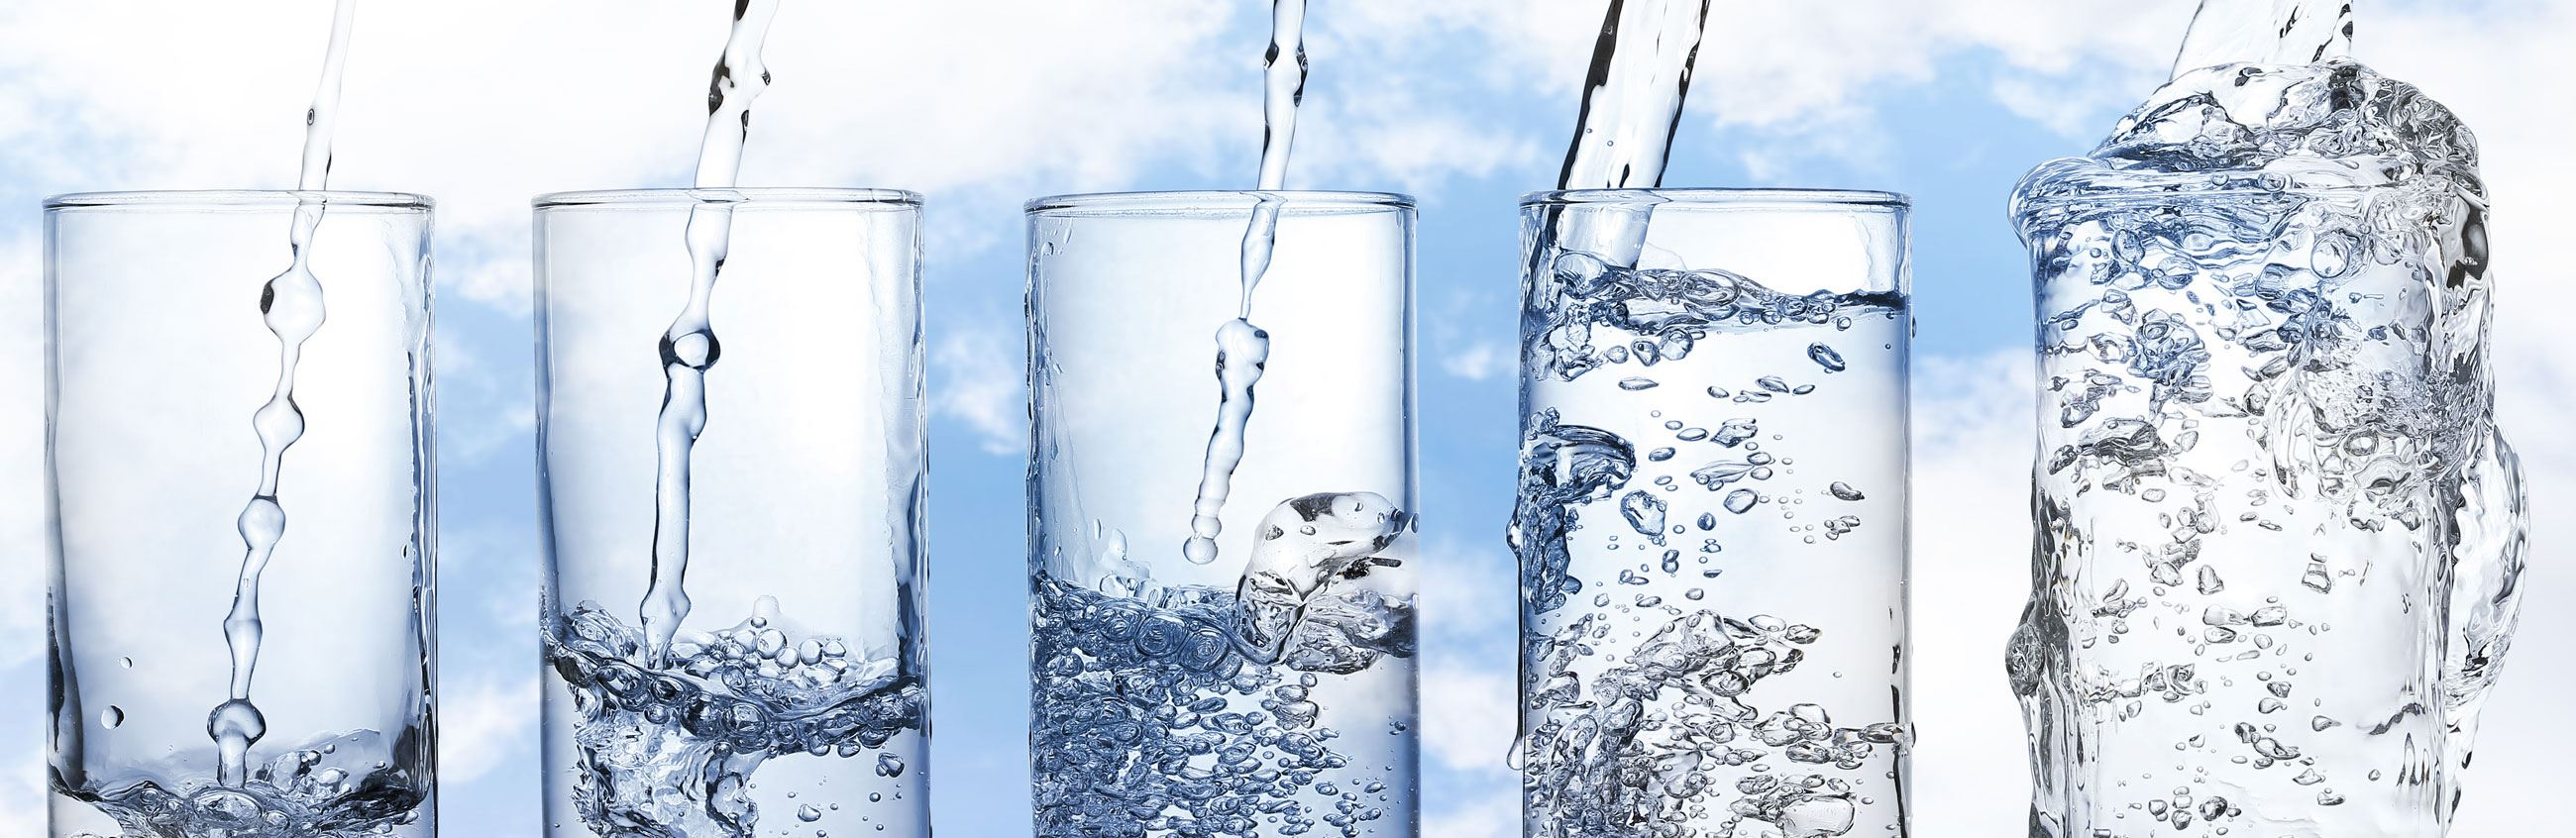 Filling glasses of water